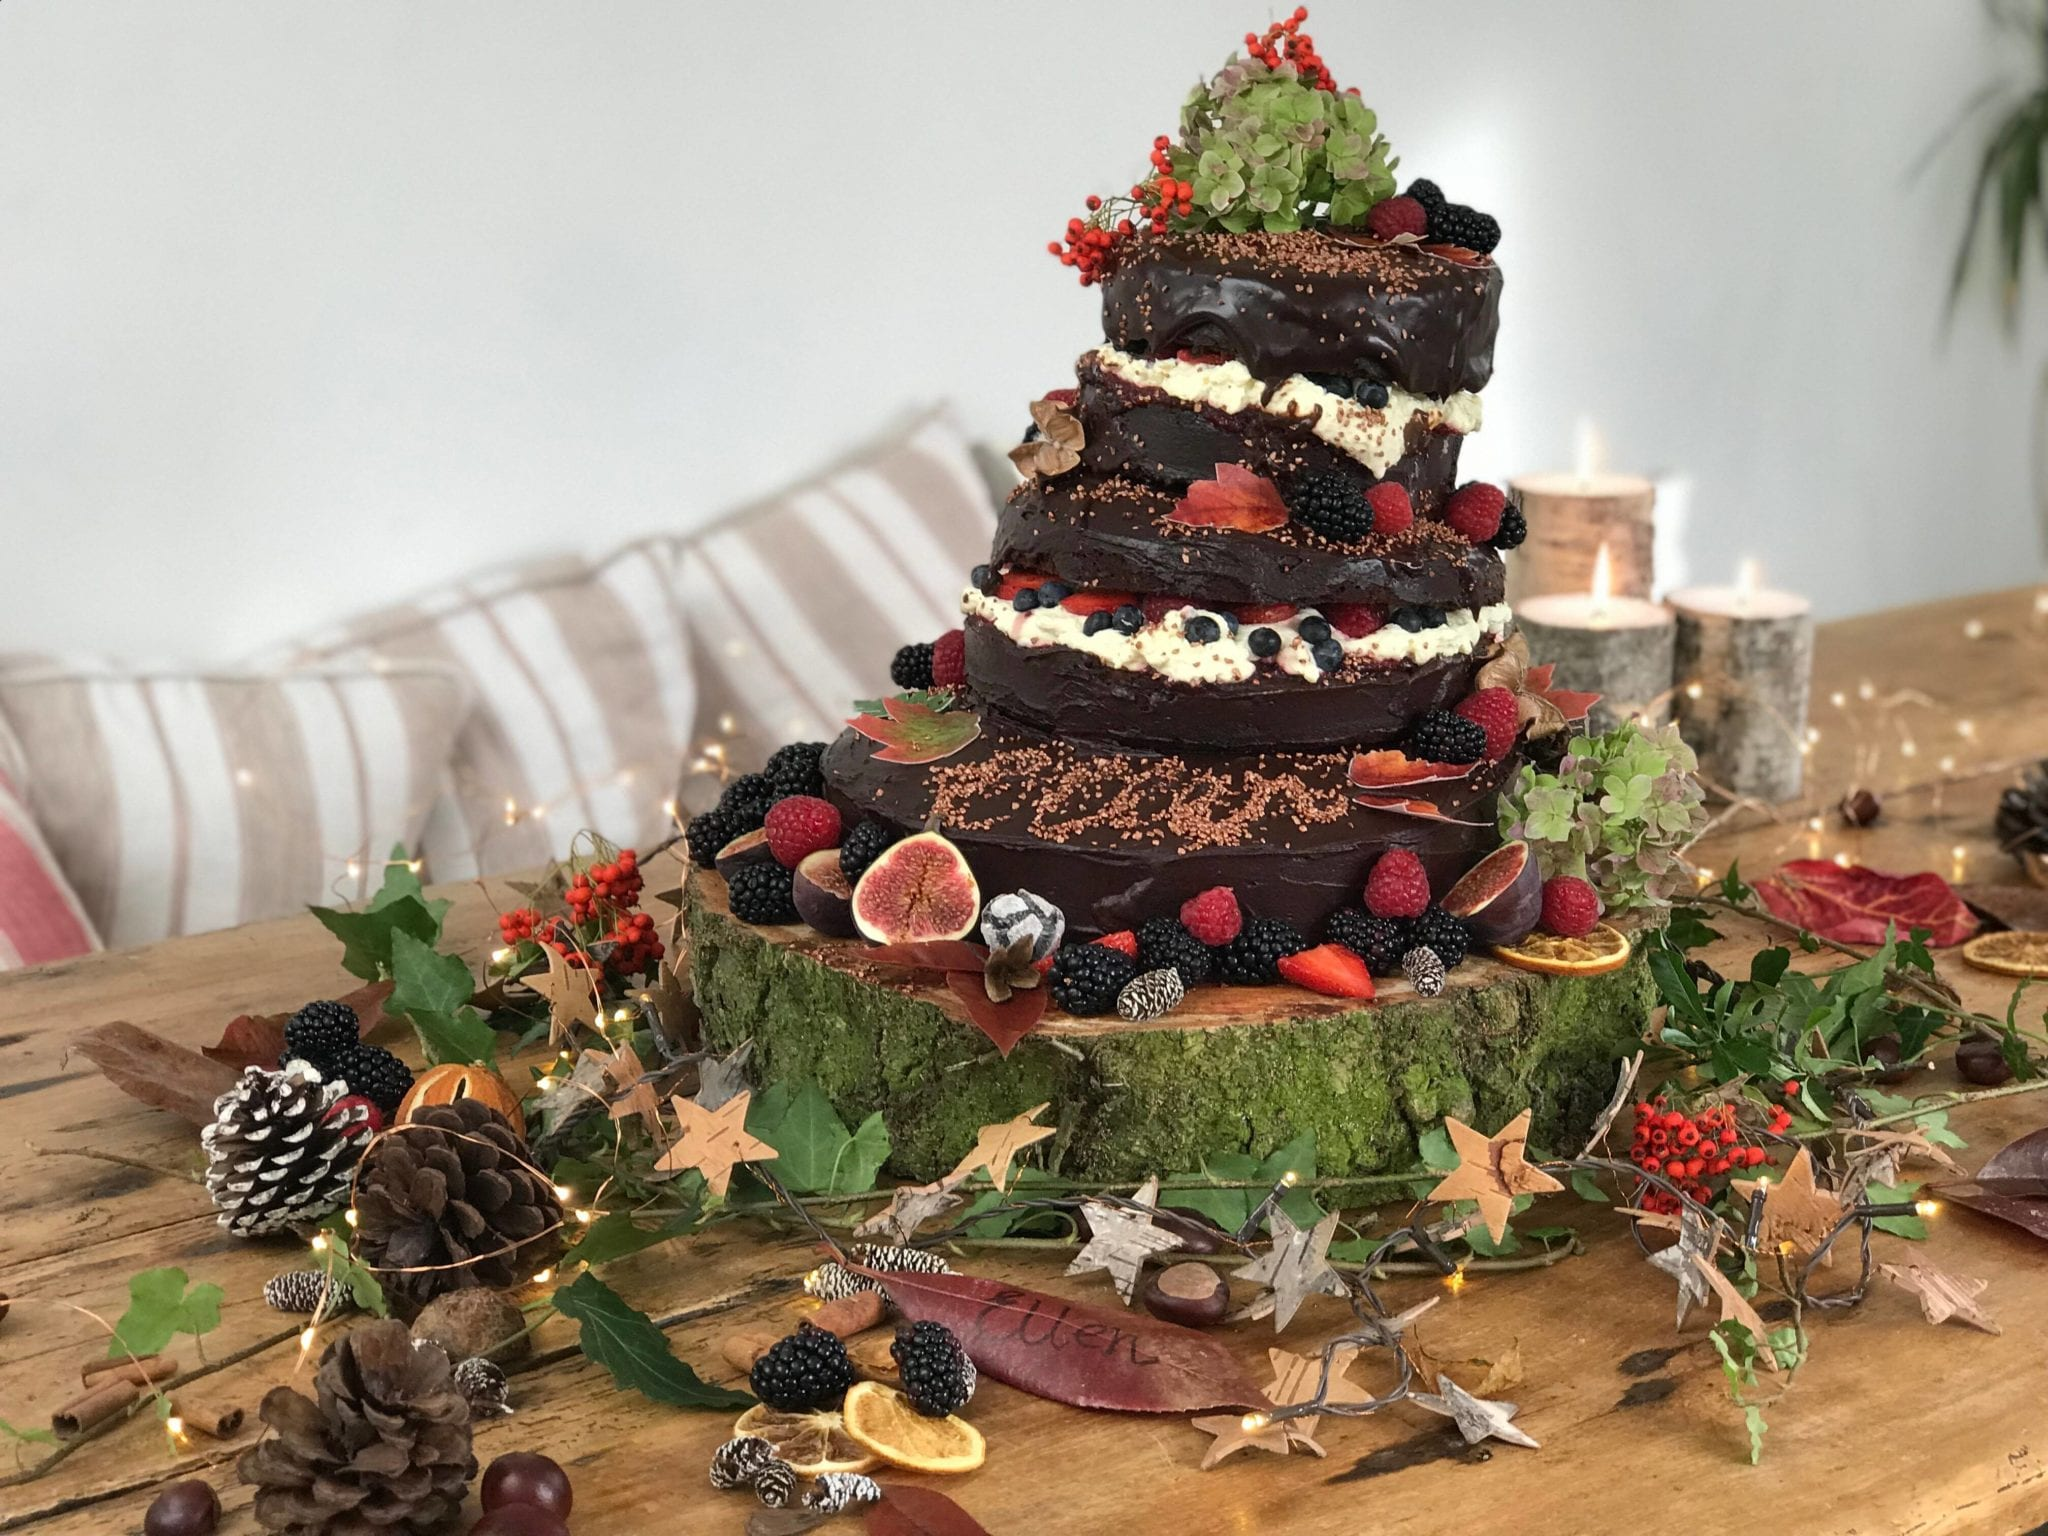 3 tiered chocolate birthday cake with fresh cream and fruit and autumnal table decorations